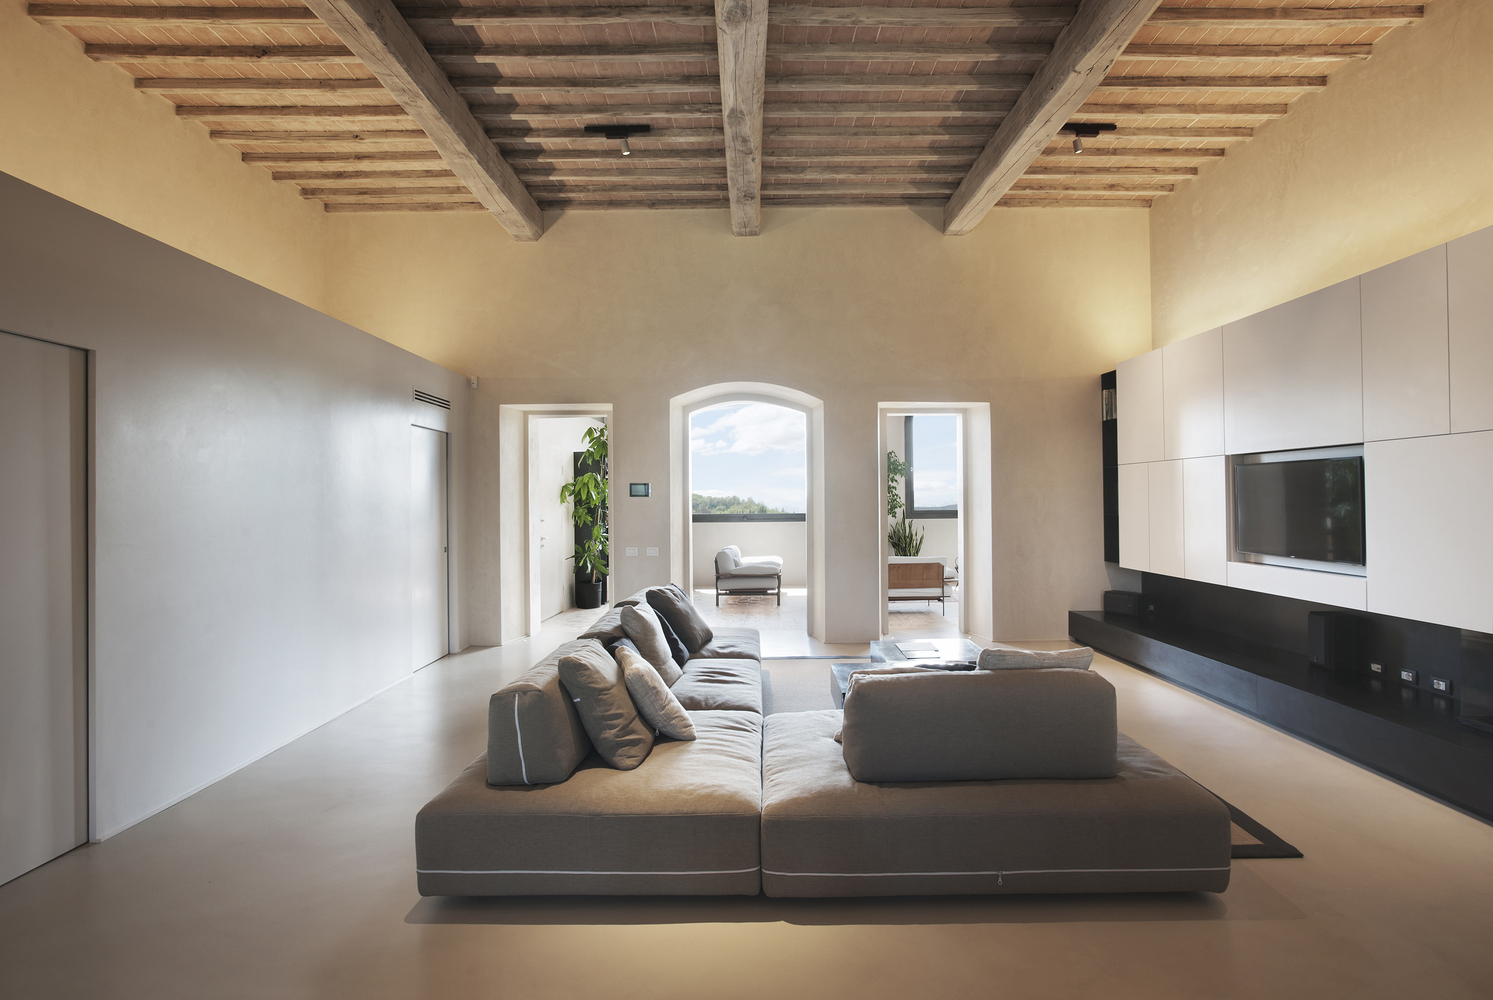 15th Century Italian Villa Renovation by CMT Architects  Your No1 source of Architecture and